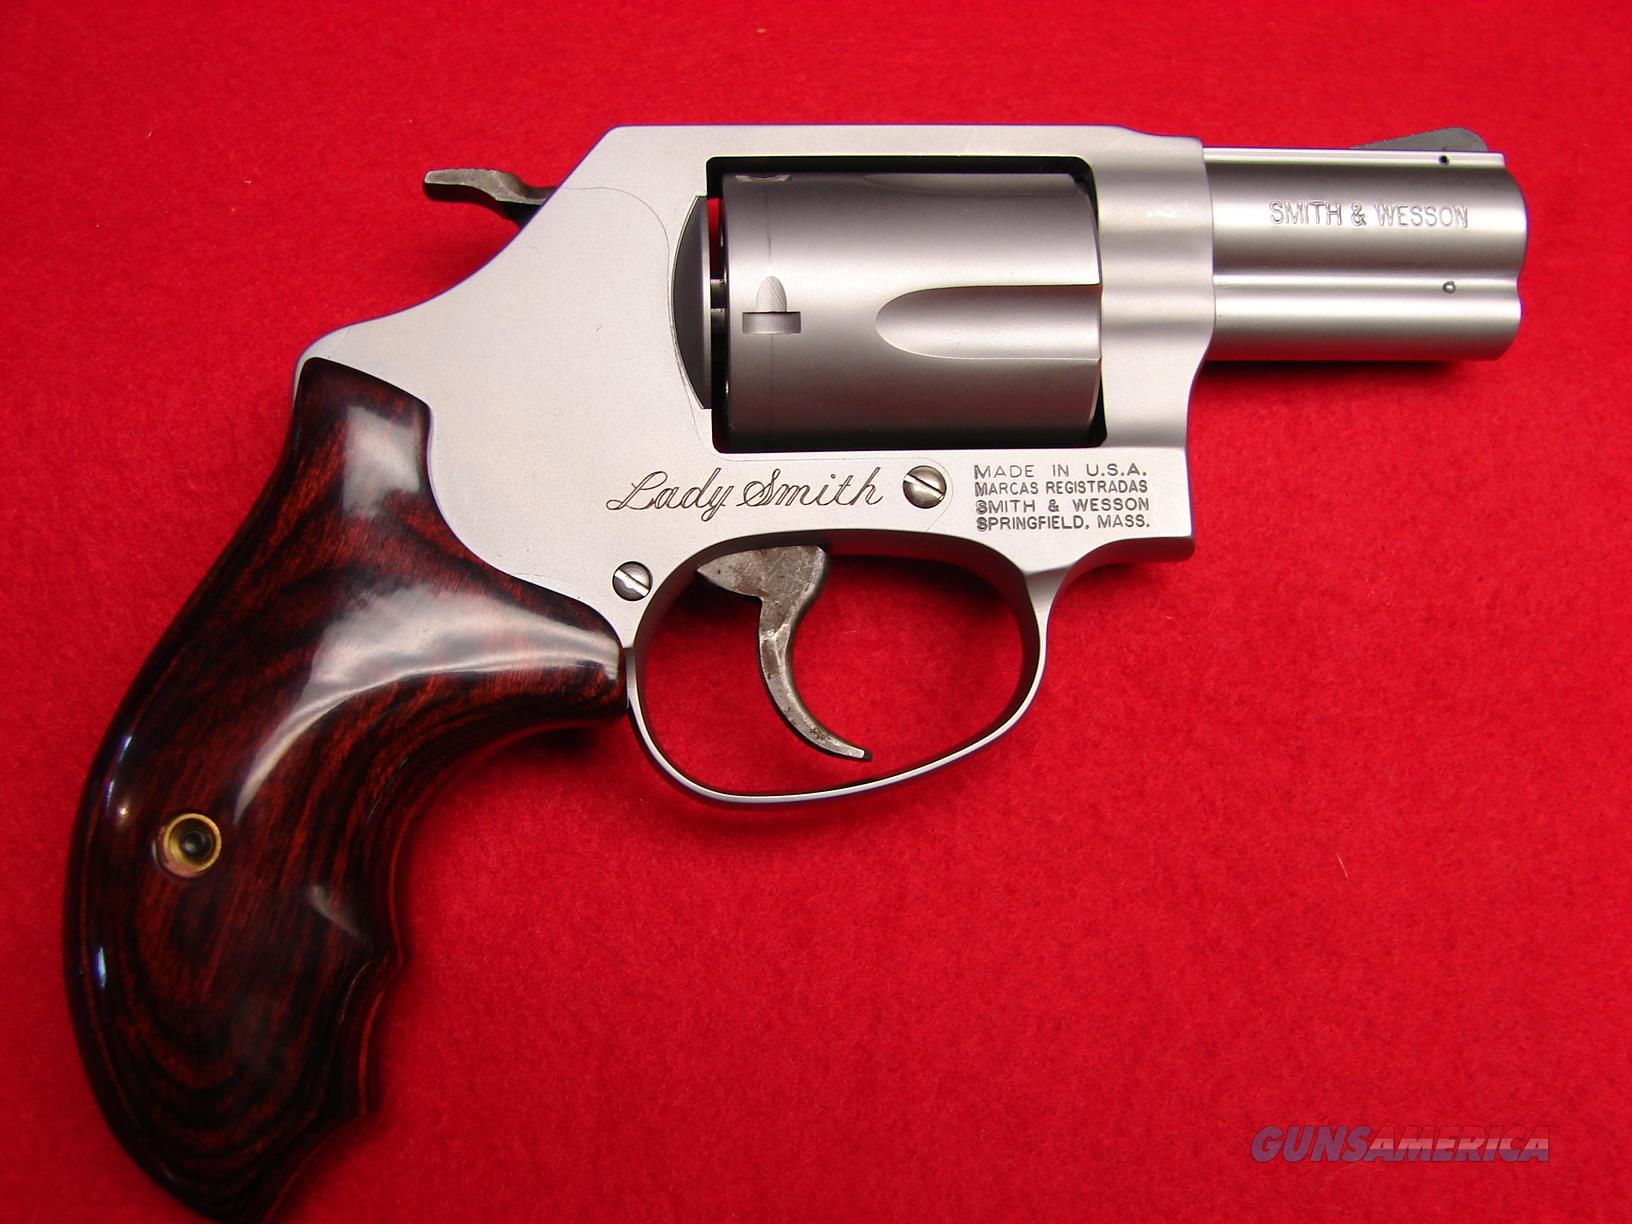 Where can you buy a 357 Model 60 Lady Smith?